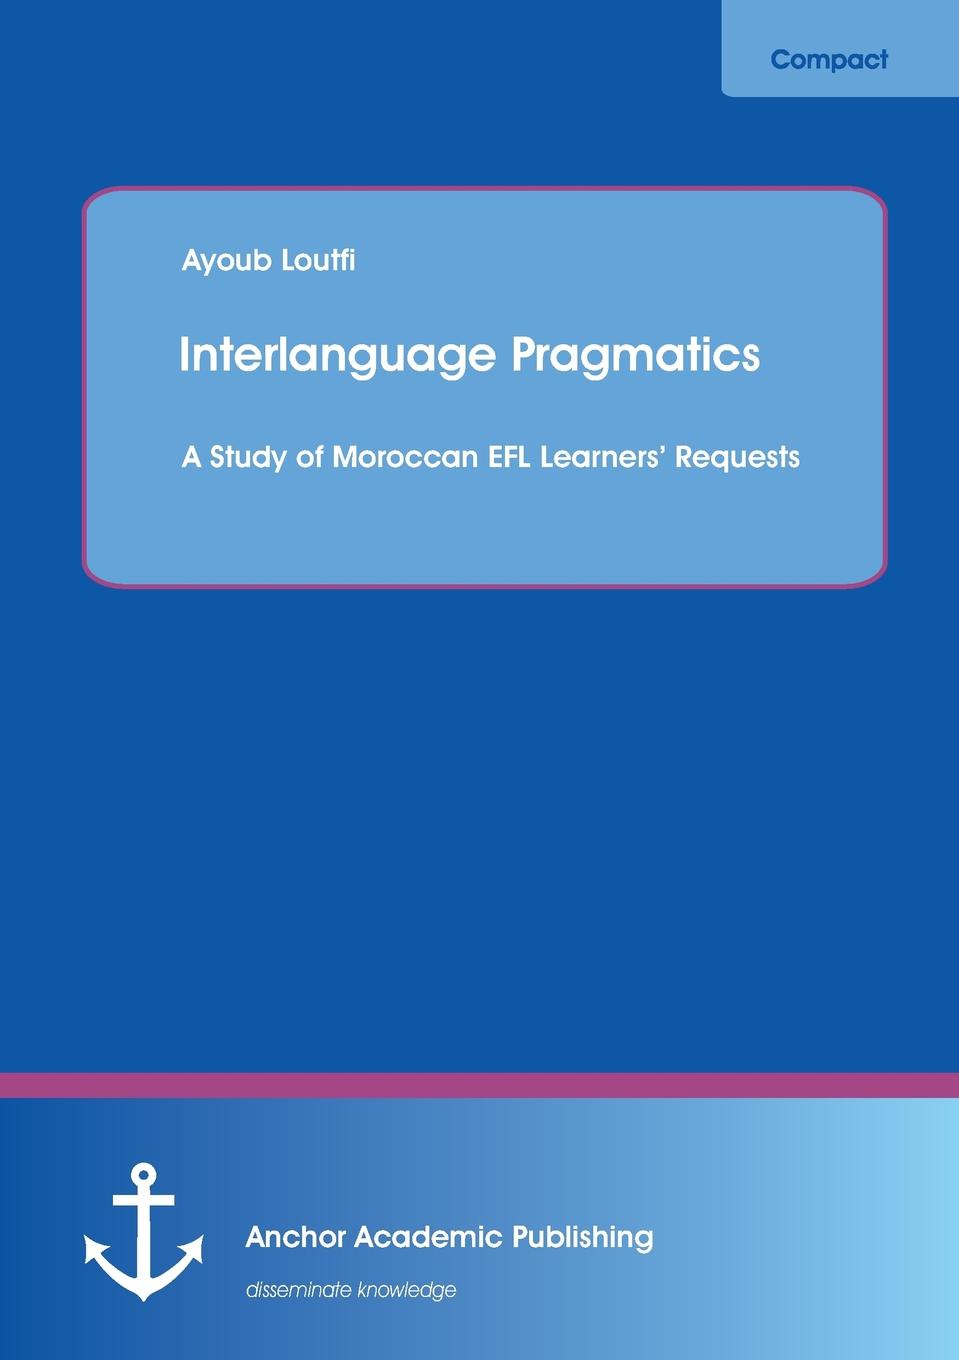 все цены на Ayoub Loutfi Interlanguage Pragmatics. A Study of Moroccan EFL Learners. Requests онлайн